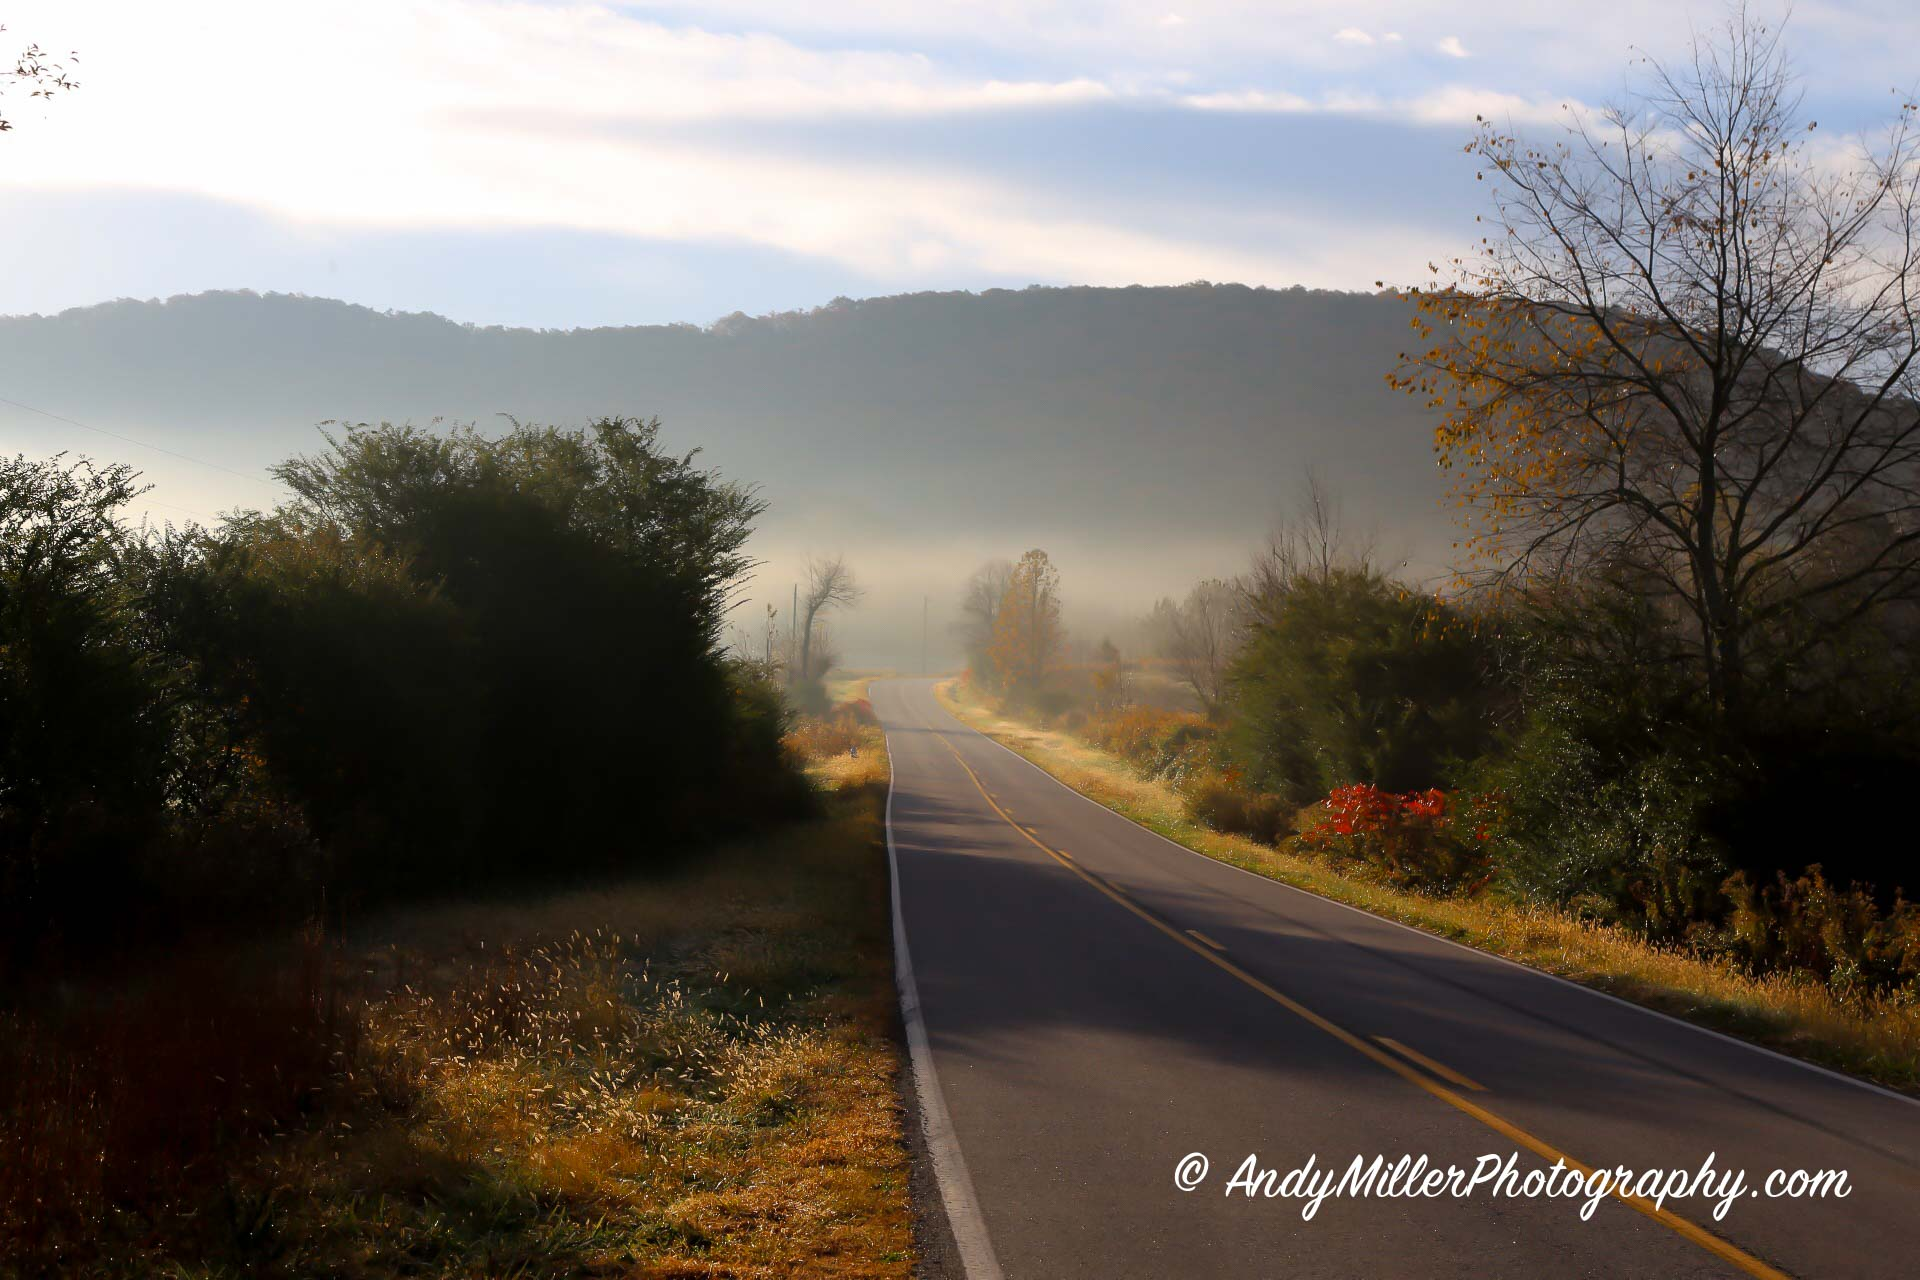 Foggy fall morning on country road